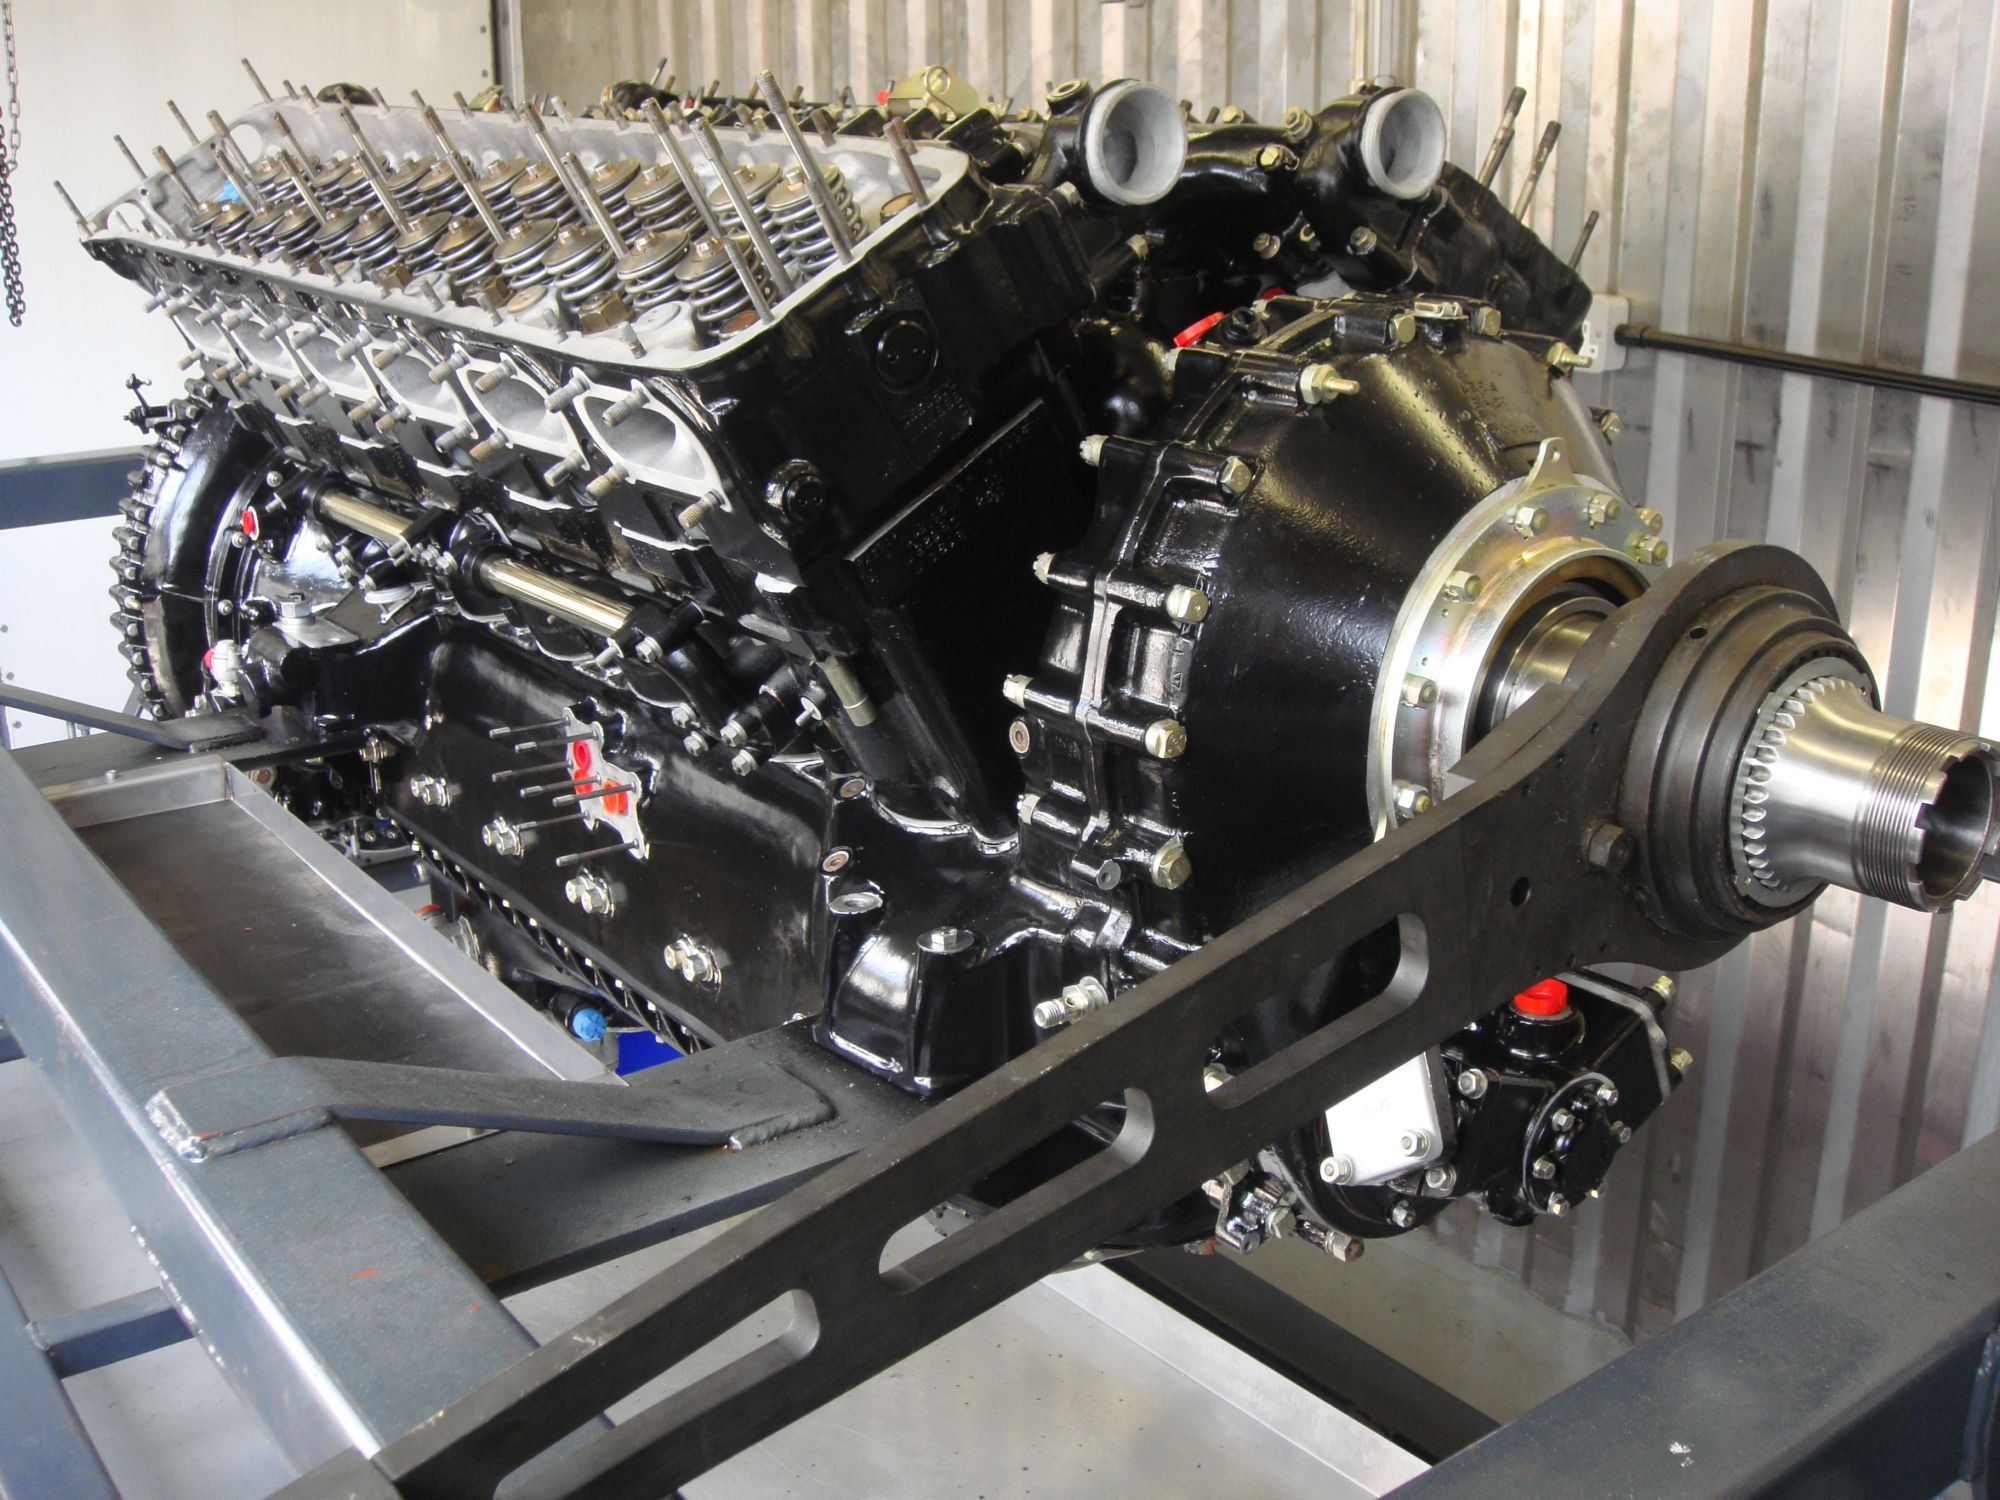 The Rolls Royce Merlin  27 litre Supercharged V12  This engine